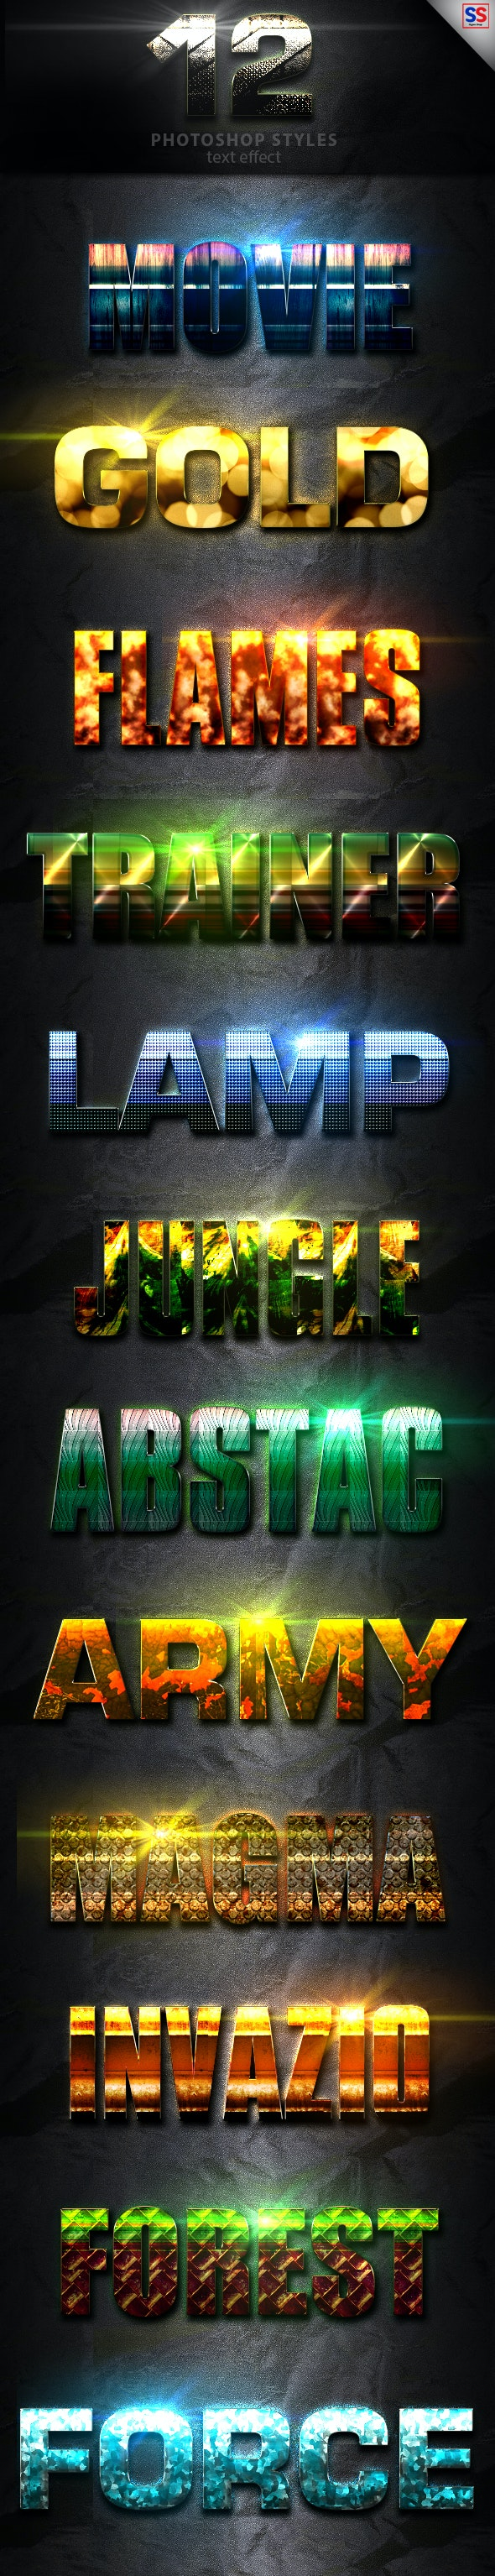 12 Light Photoshop text Effect vol 11 - Text Effects Styles